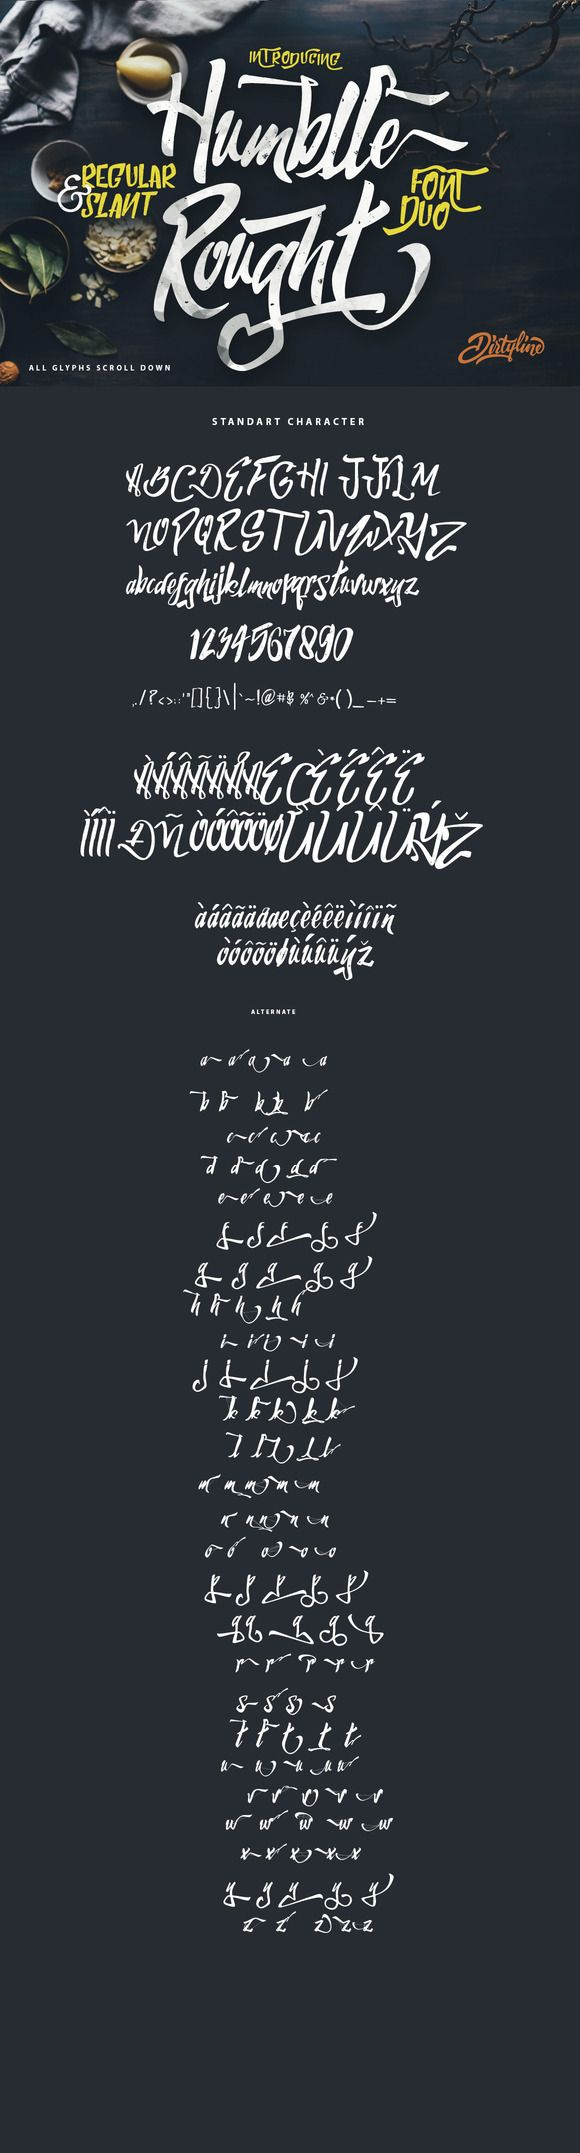 Humblle Rought - Font Duo + Extras by Dirtyline Studio on Creative Market